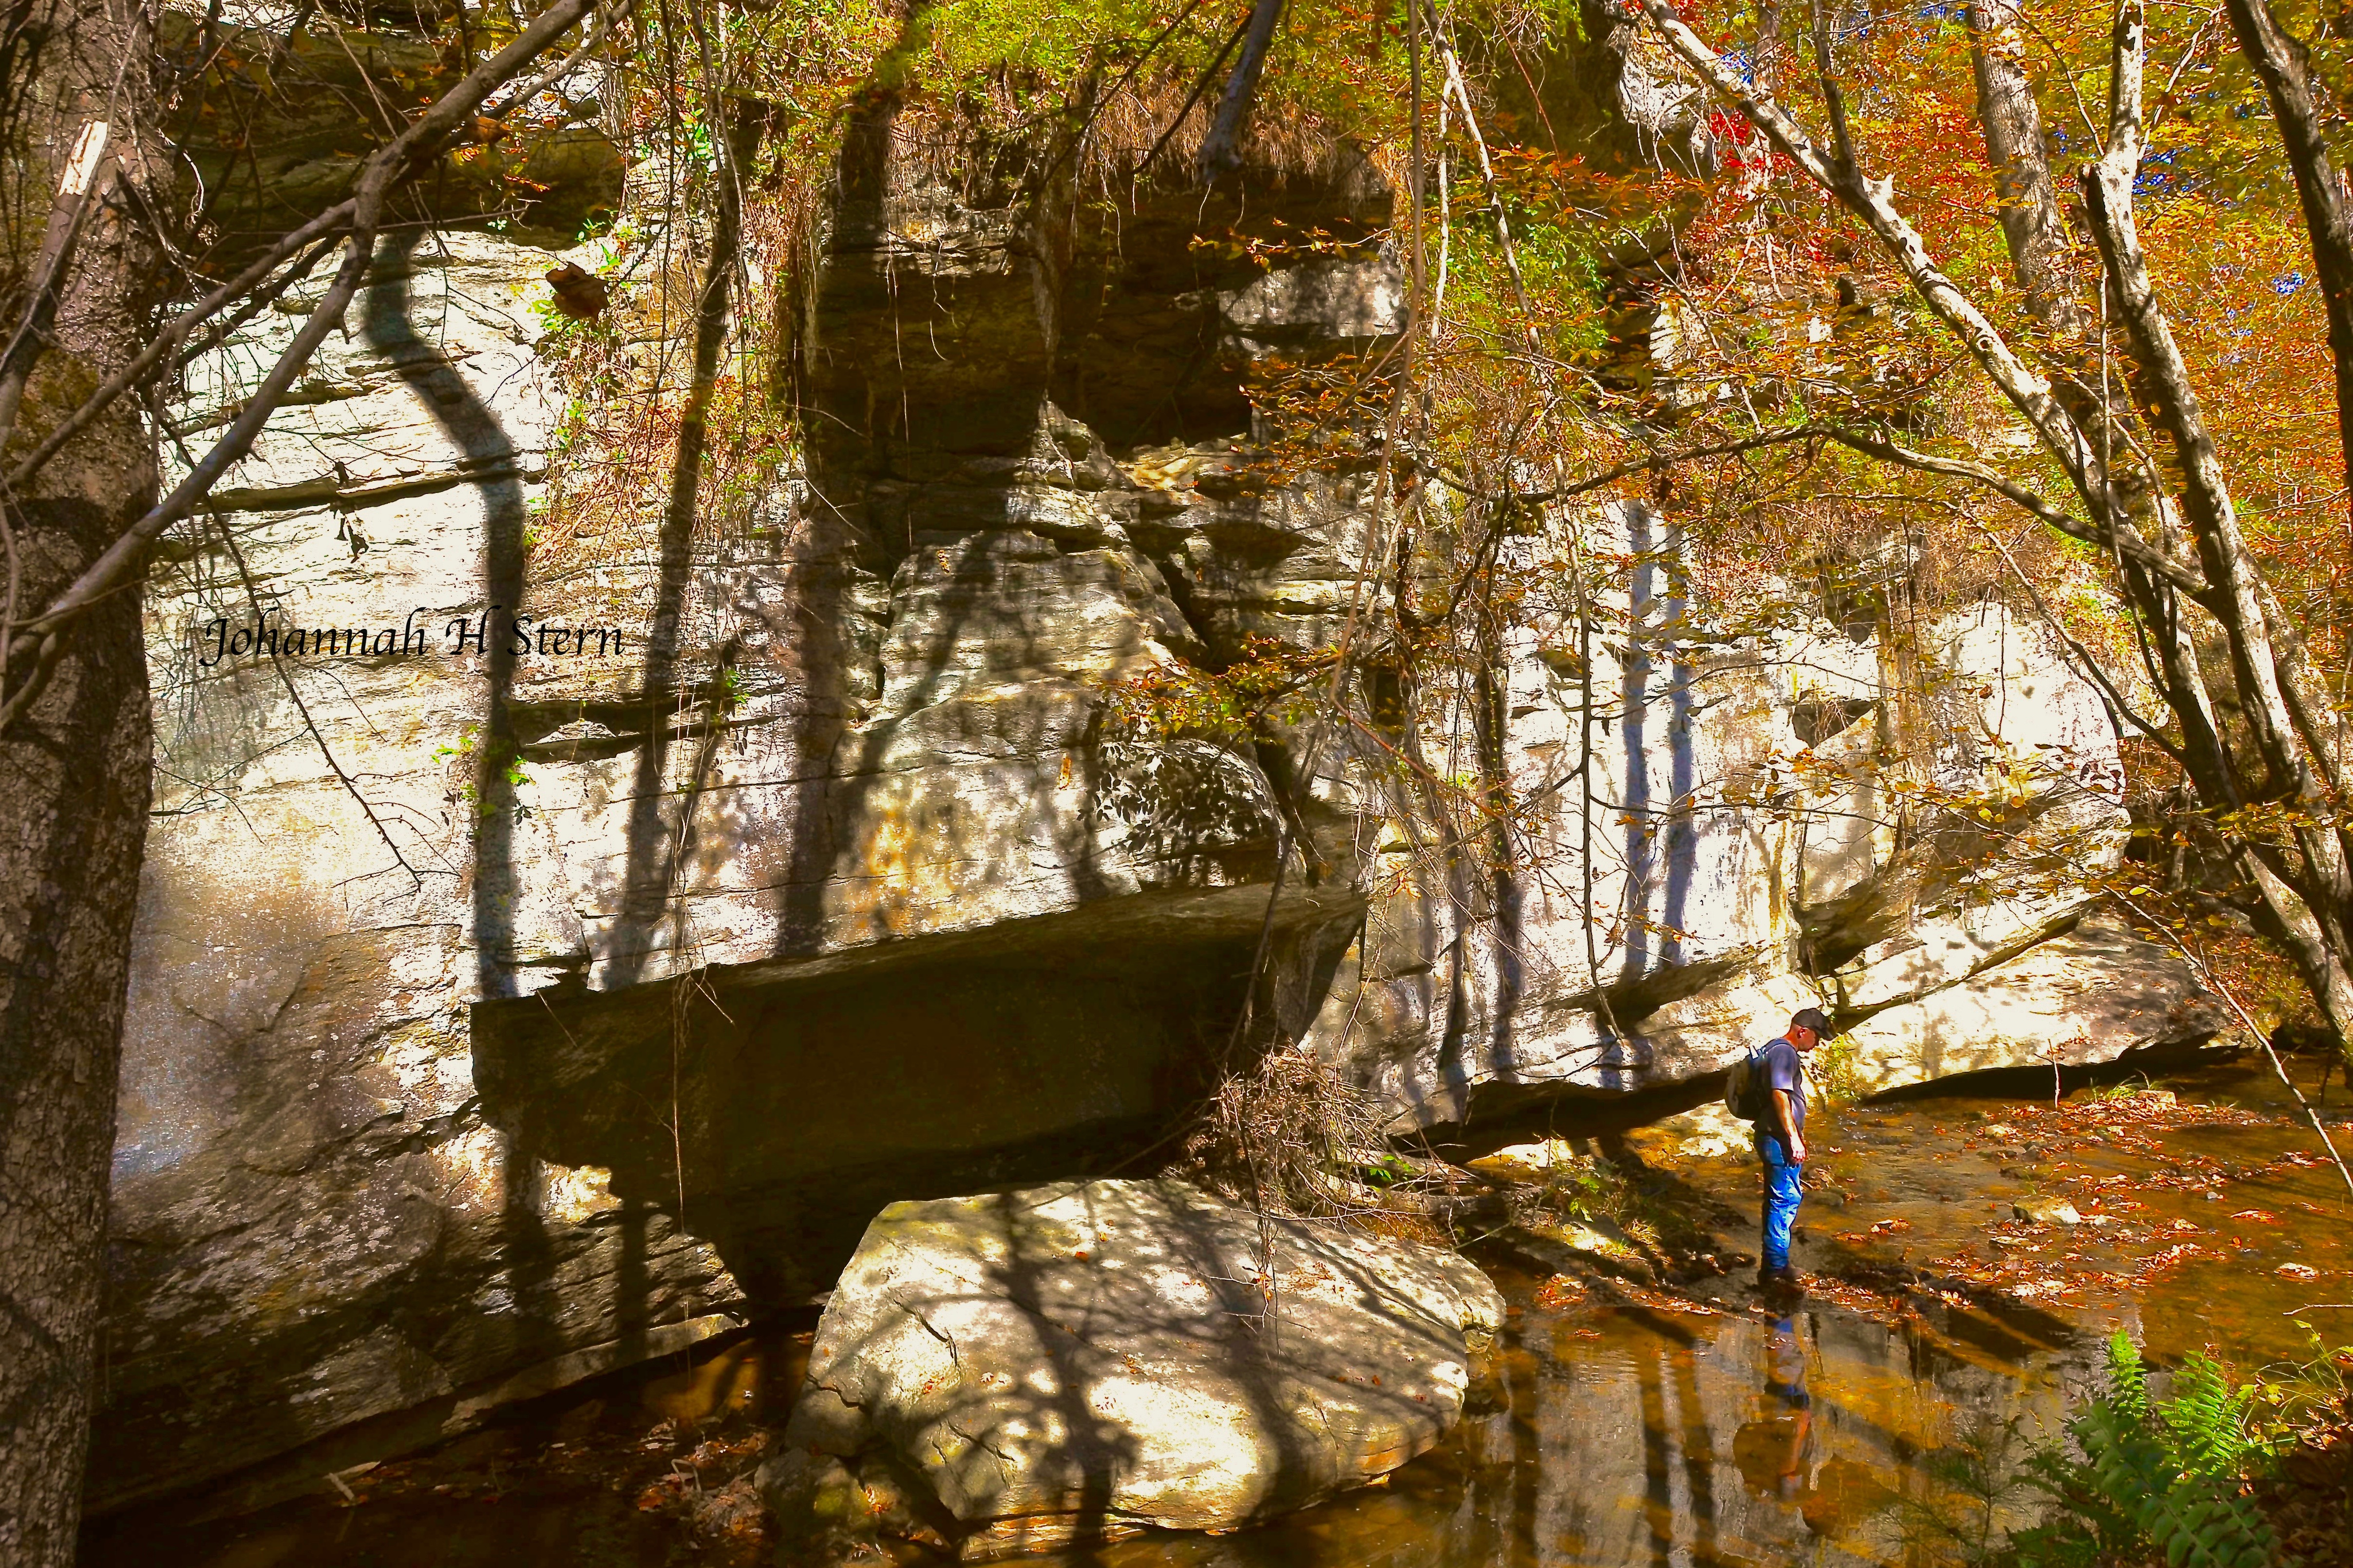 Palisades at Vade Mecum in Hanging Rock State Park.  Photo by Johannah H. Stern.